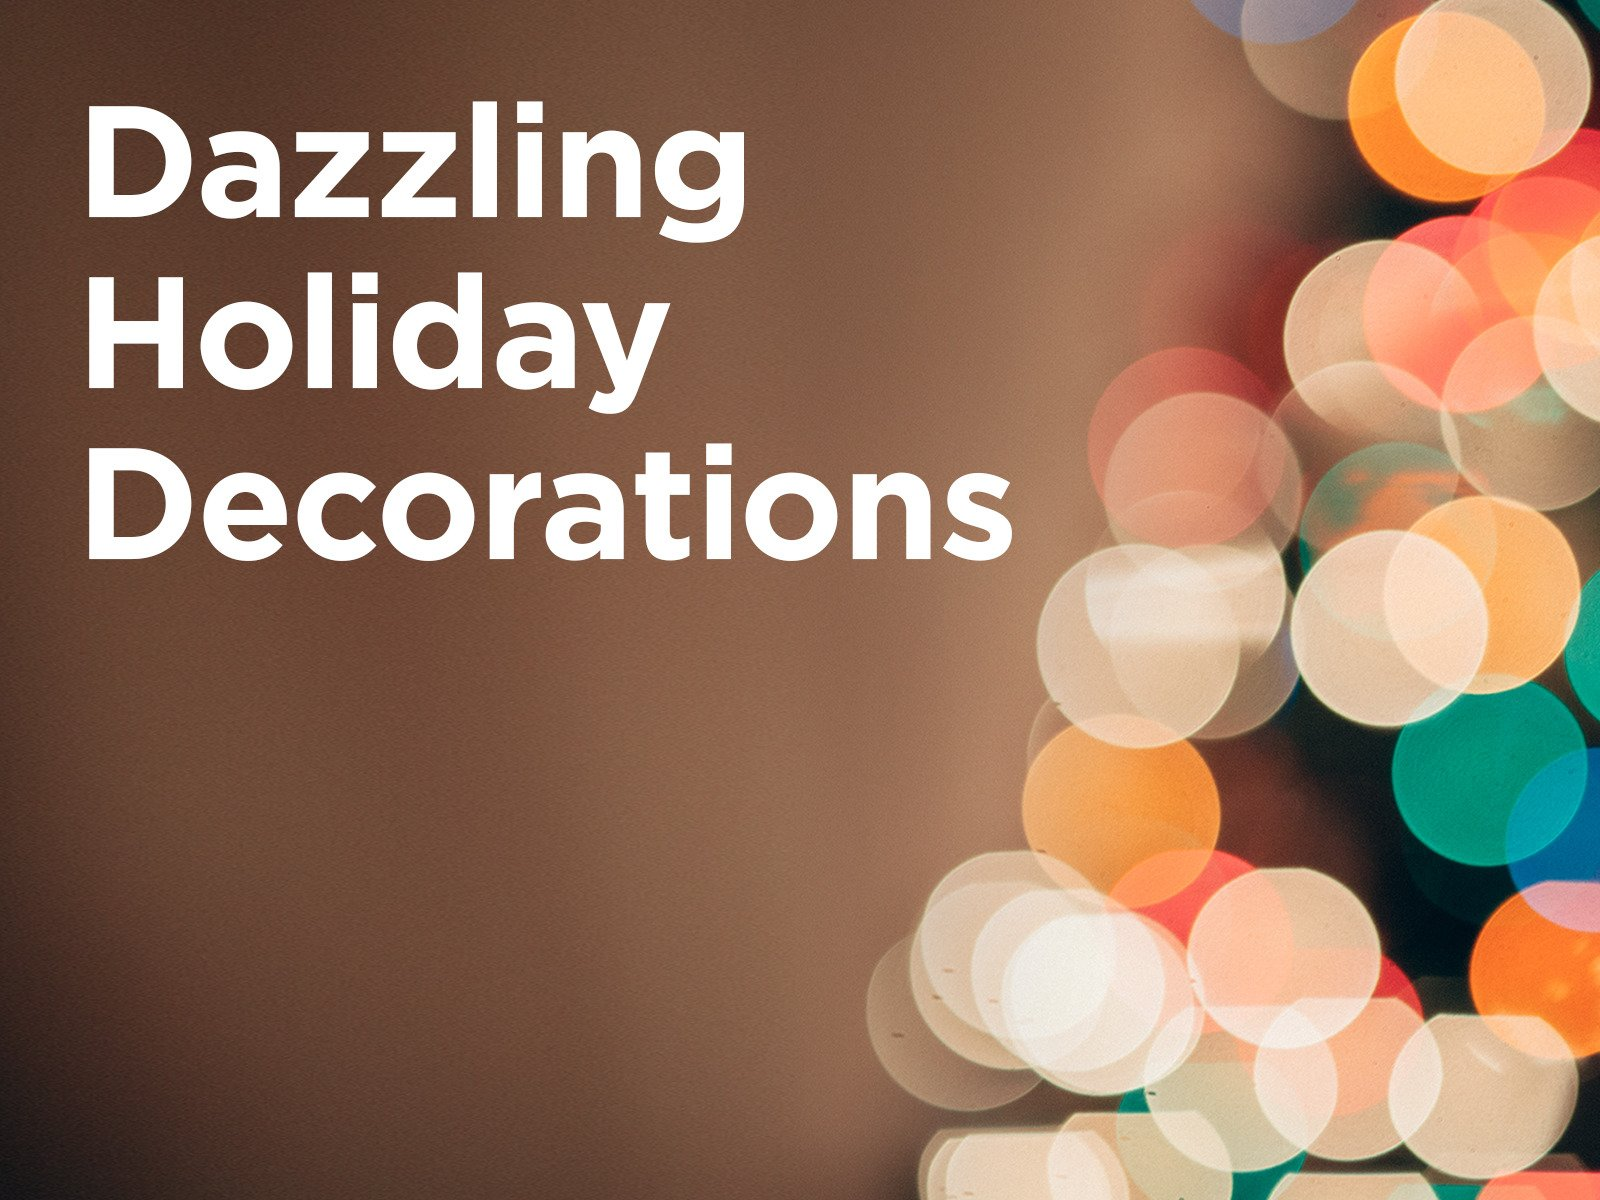 Dazzling Holiday Decorations - Season 1